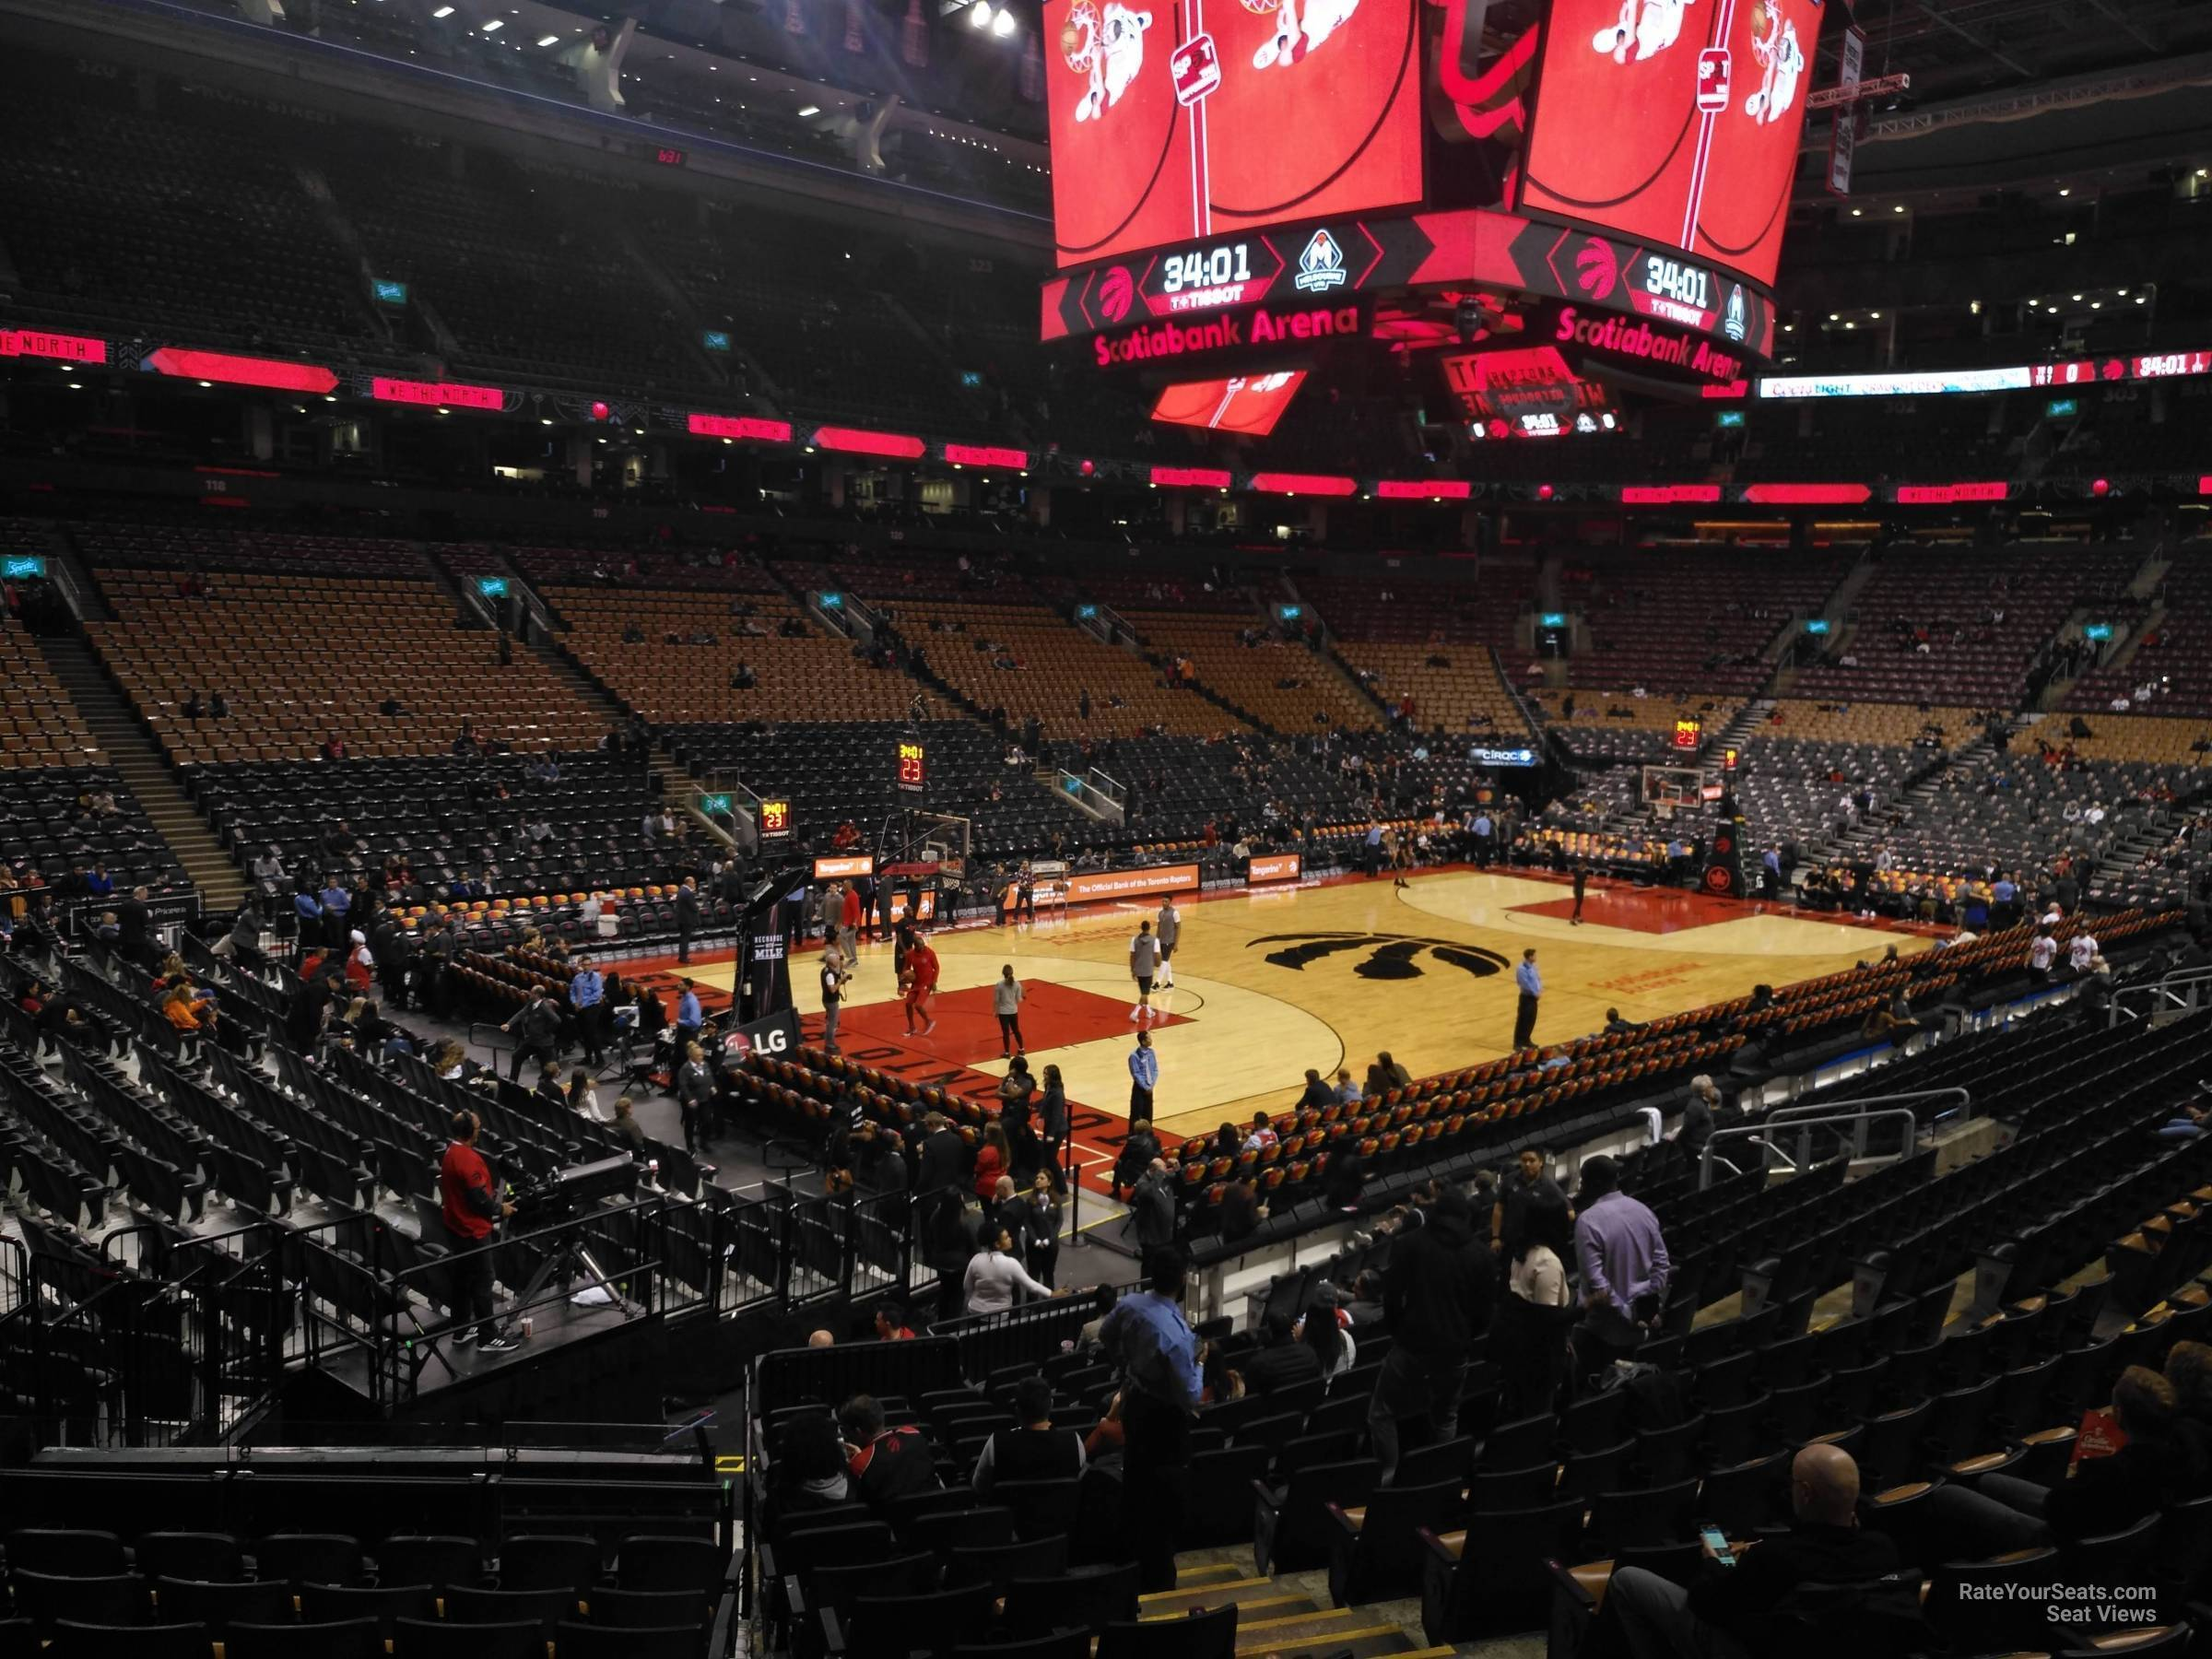 Toronto Raptors Seat View for Scotiabank Arena Section 111, Row 28